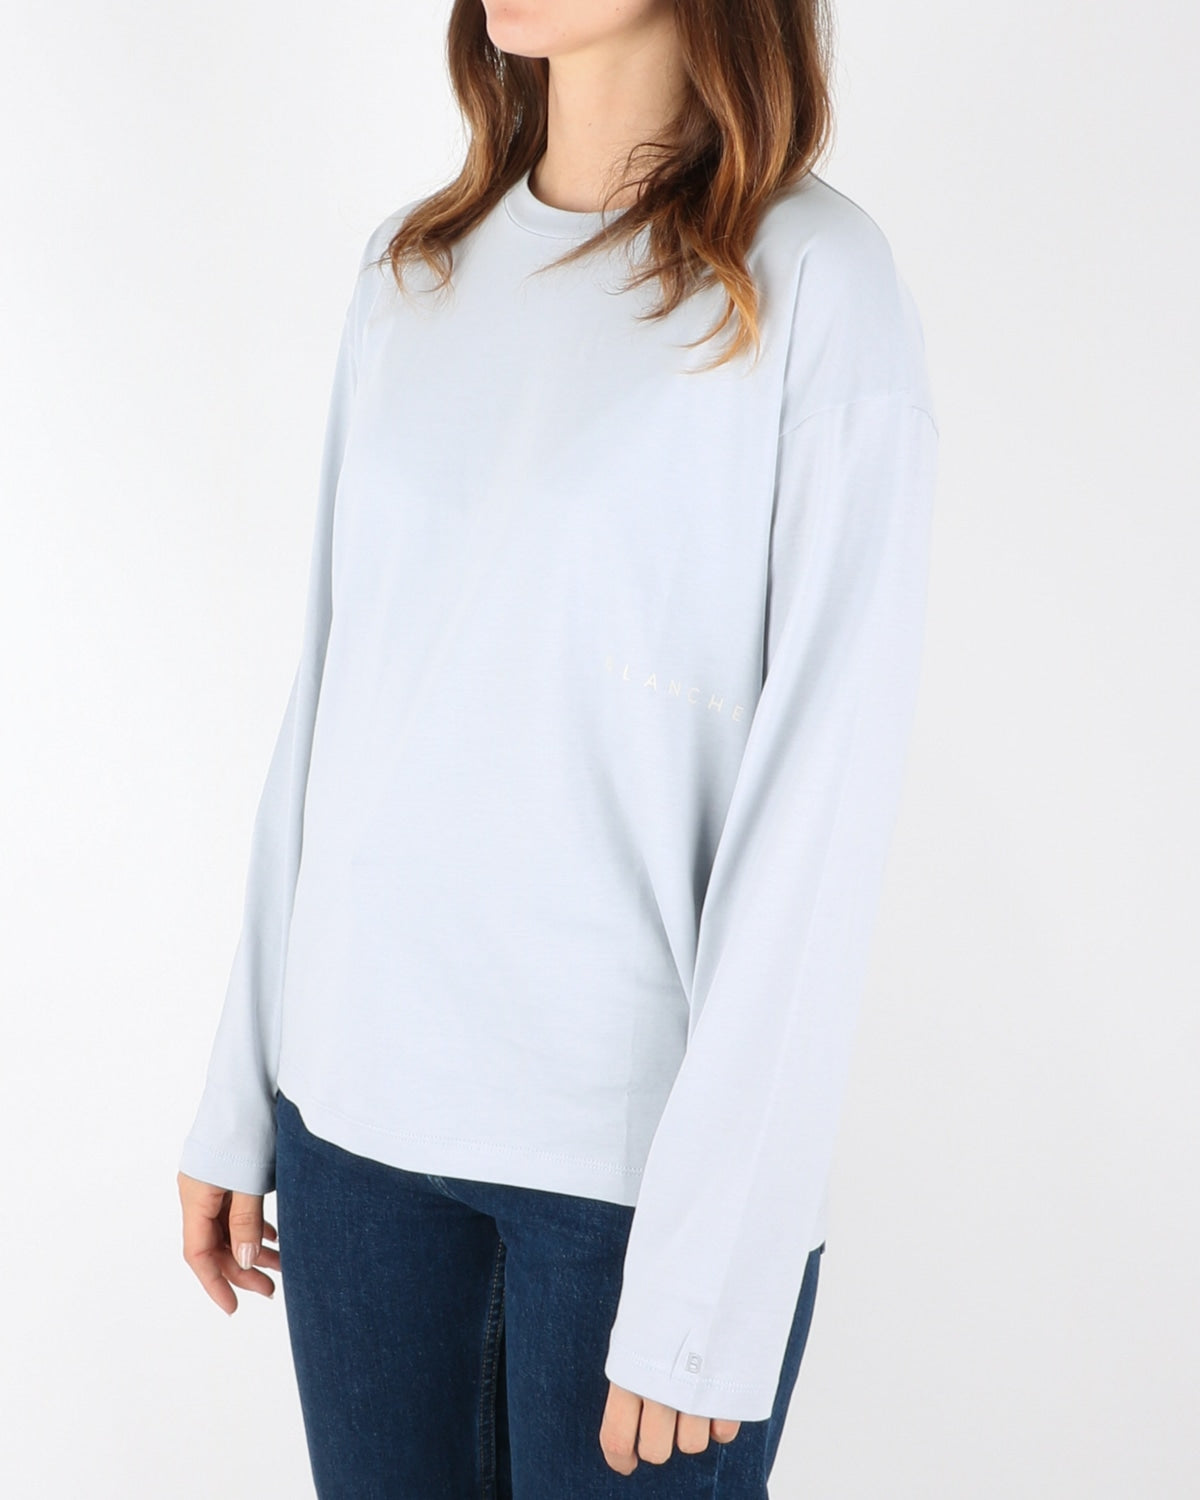 blanche_main light longsleeve_arctic ice_2_4